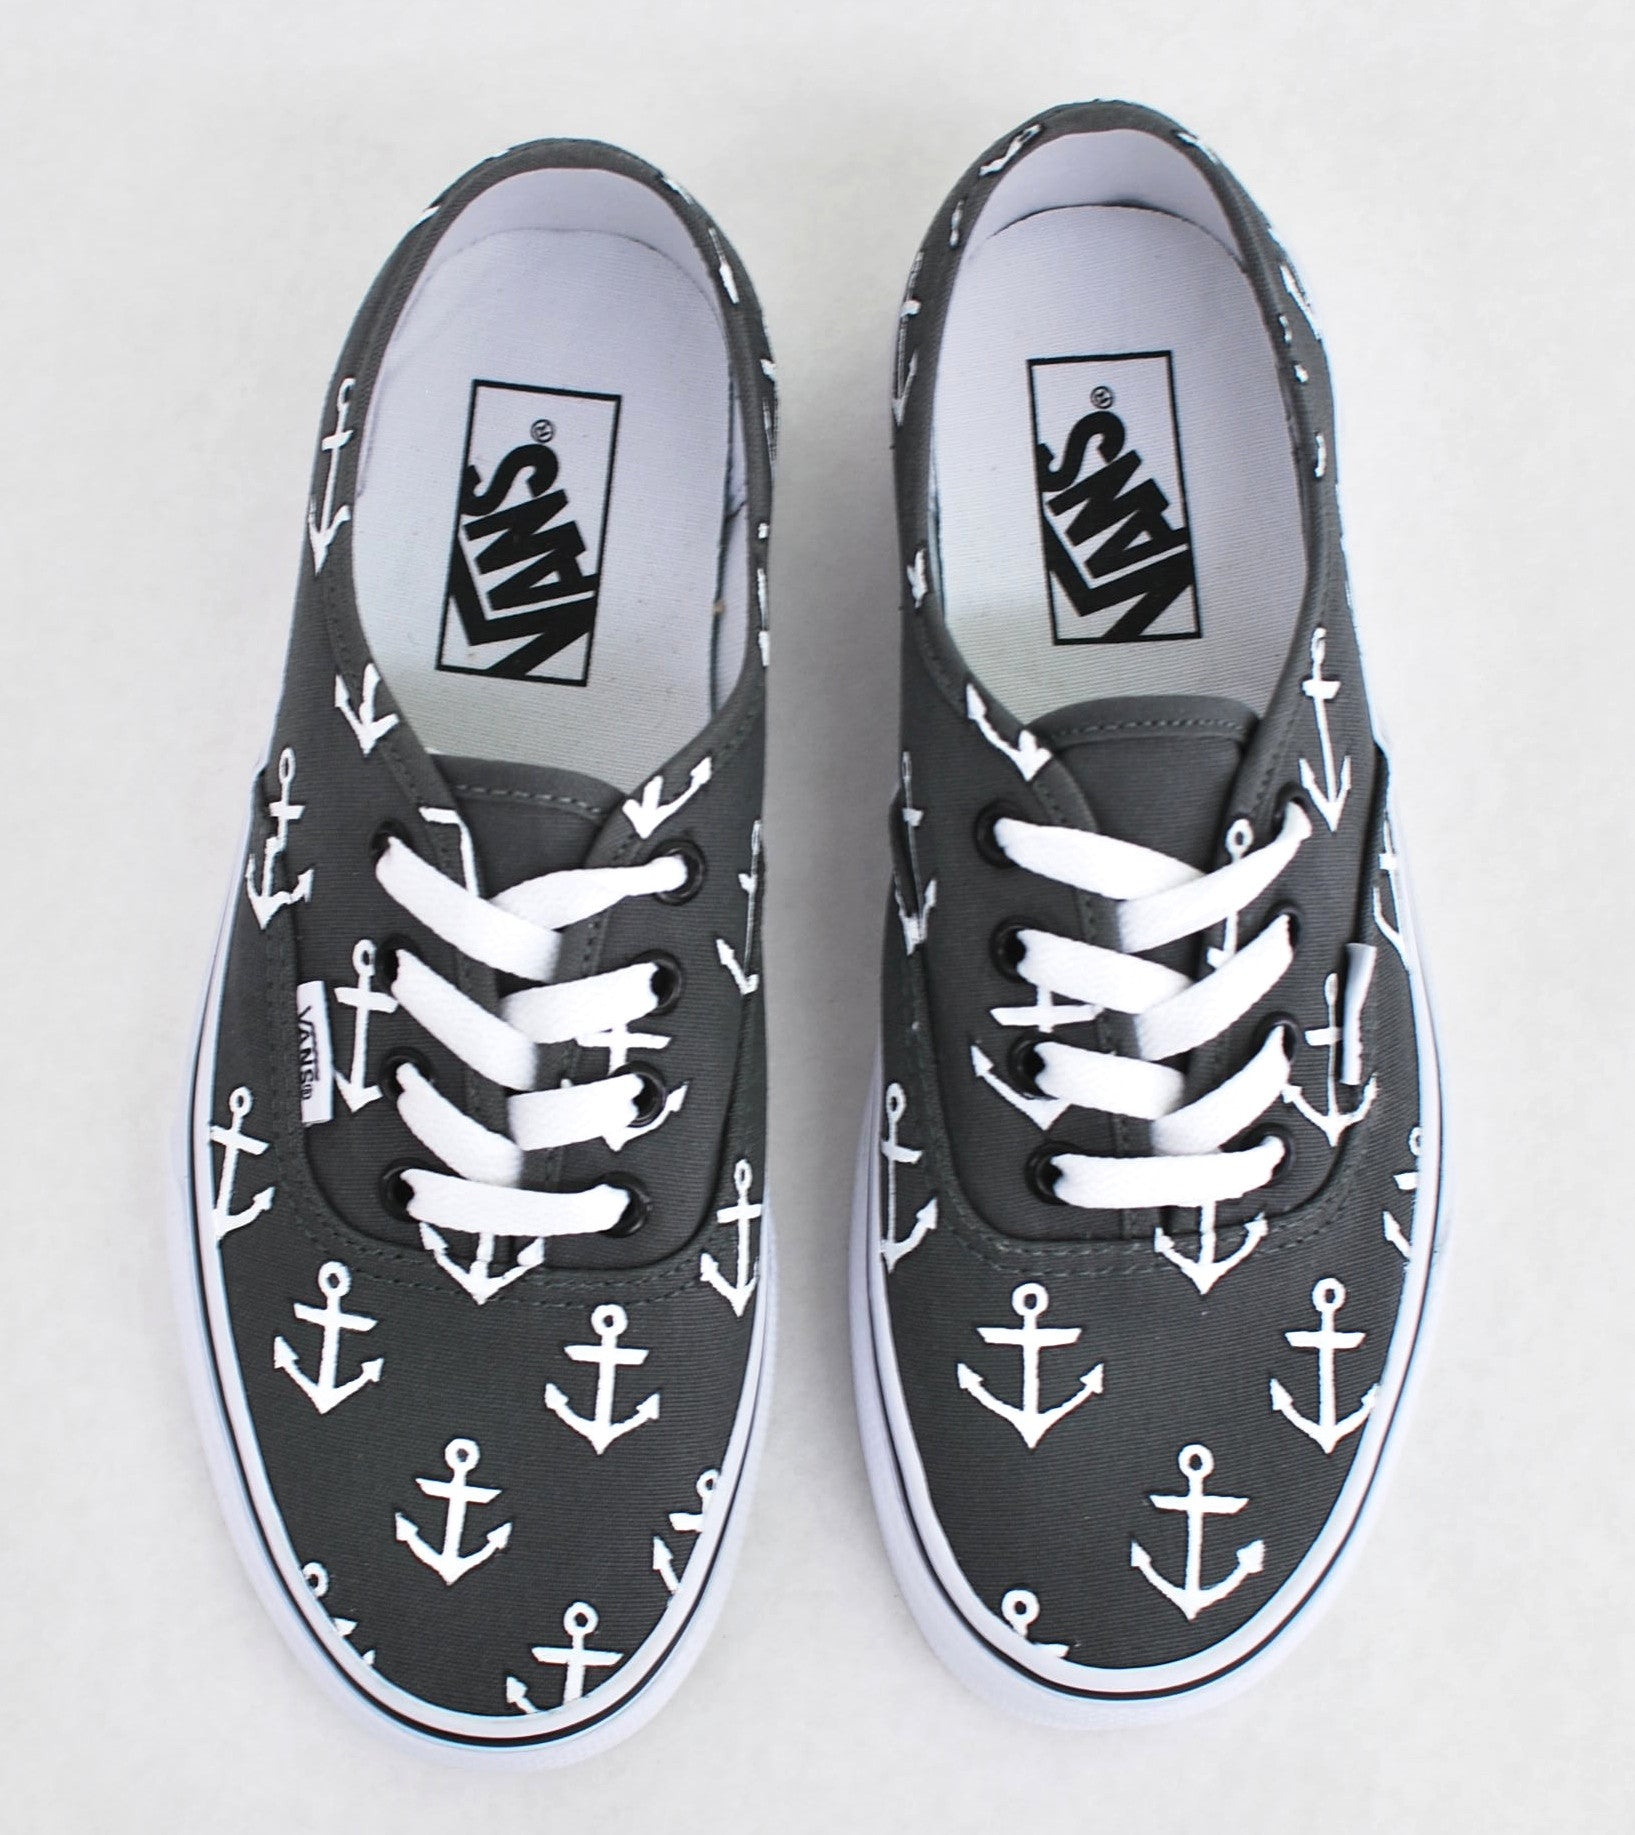 Custom Hand Painted Sailor Nautical Theme Anchor Pattern Charcoal Vans Authentic Shoes